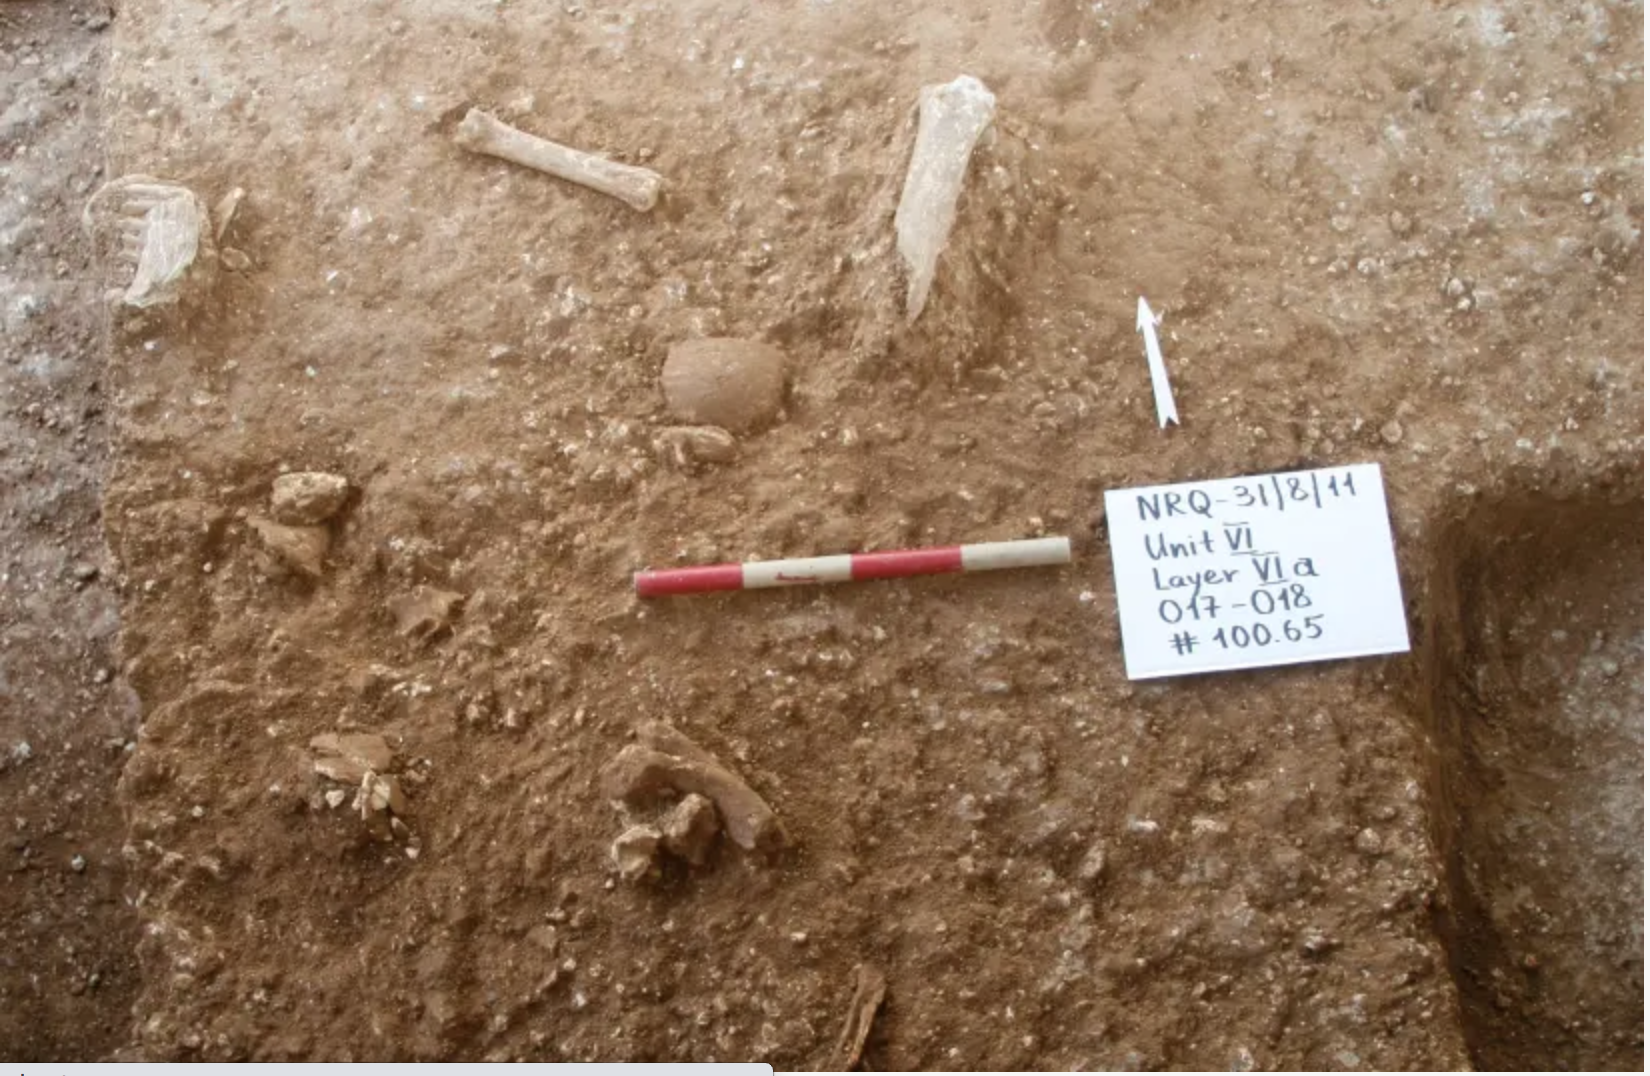 Skull found at the site among other items at Nesher Ramla. (photo credit: DR. YOSSI ZAIDNER)